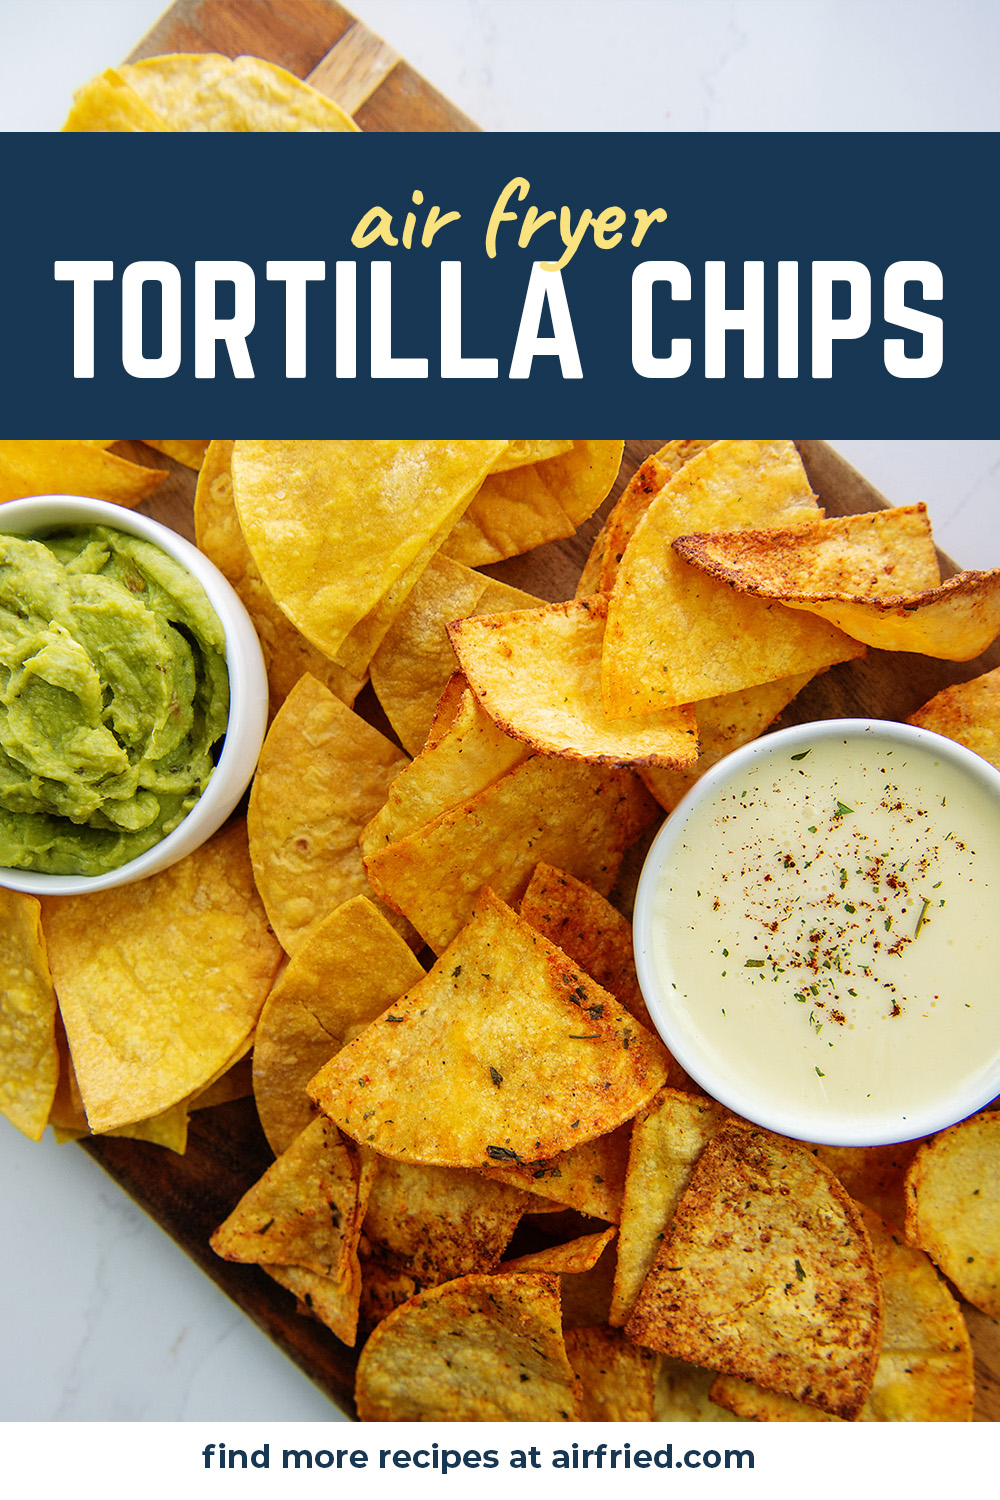 Homemade tortilla chips are easy to make and can be made with a variety of flavors! #airfryer #homemadedoritos #recipes